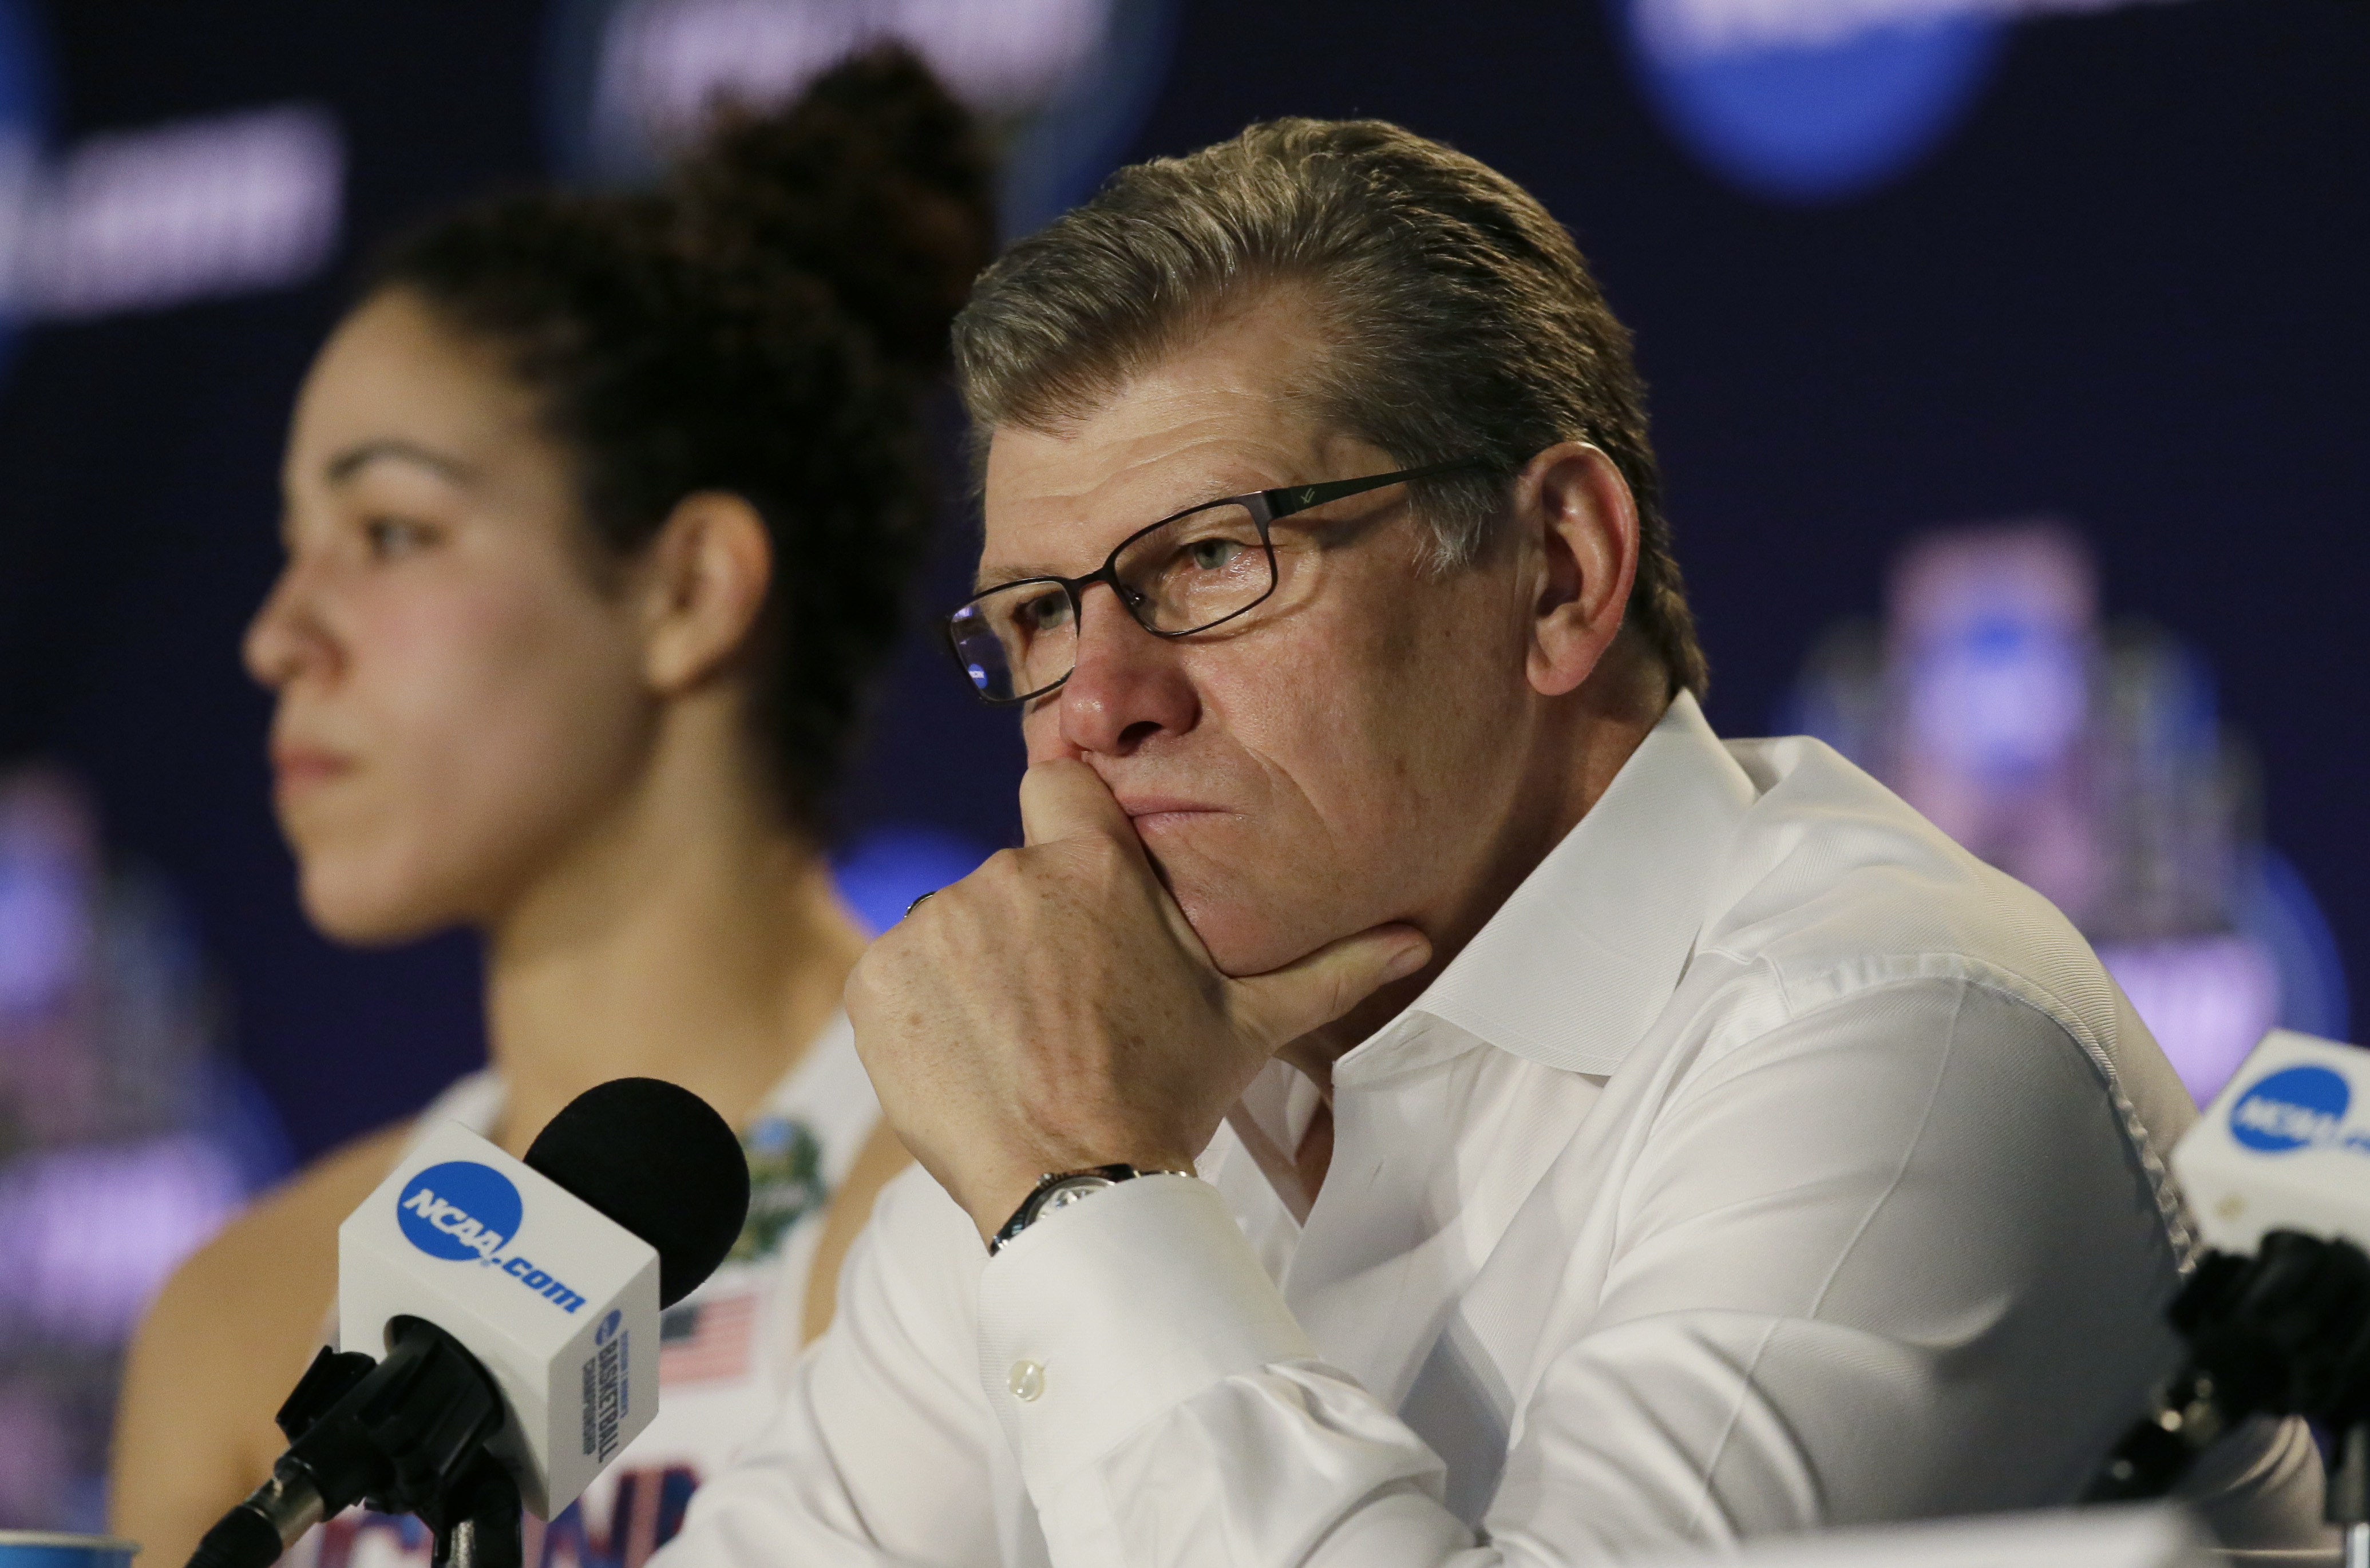 Connecticut head coach Geno Auriemma talks with the media following their loss to Mississippi State in an NCAA college basketball game in the semifinals of the women's Final Four, Friday, March 31, 2017, in Dallas. Mississippi State won 66-64. (AP Photo/L